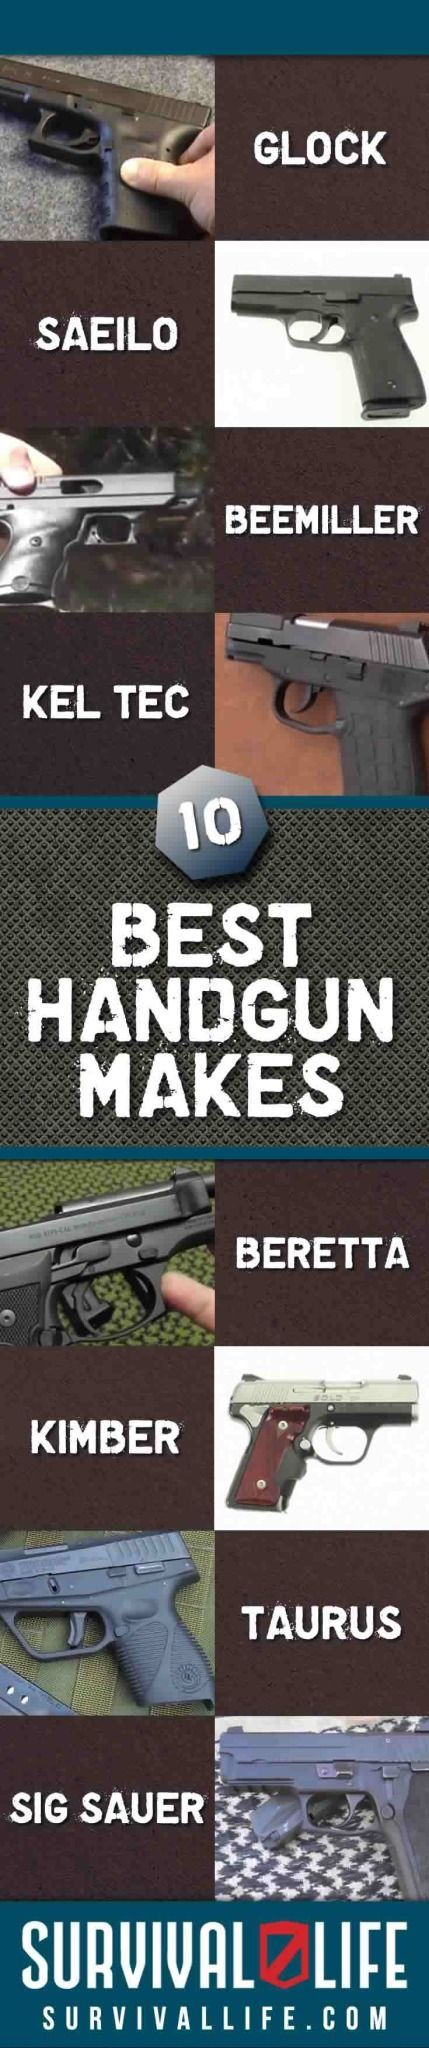 Top 10 Handgun Makes in the US | Guns and Ammo Tips for Self Defense by Survival Life http://survivallife.com/2014/03/24/best-10-handguns-us/